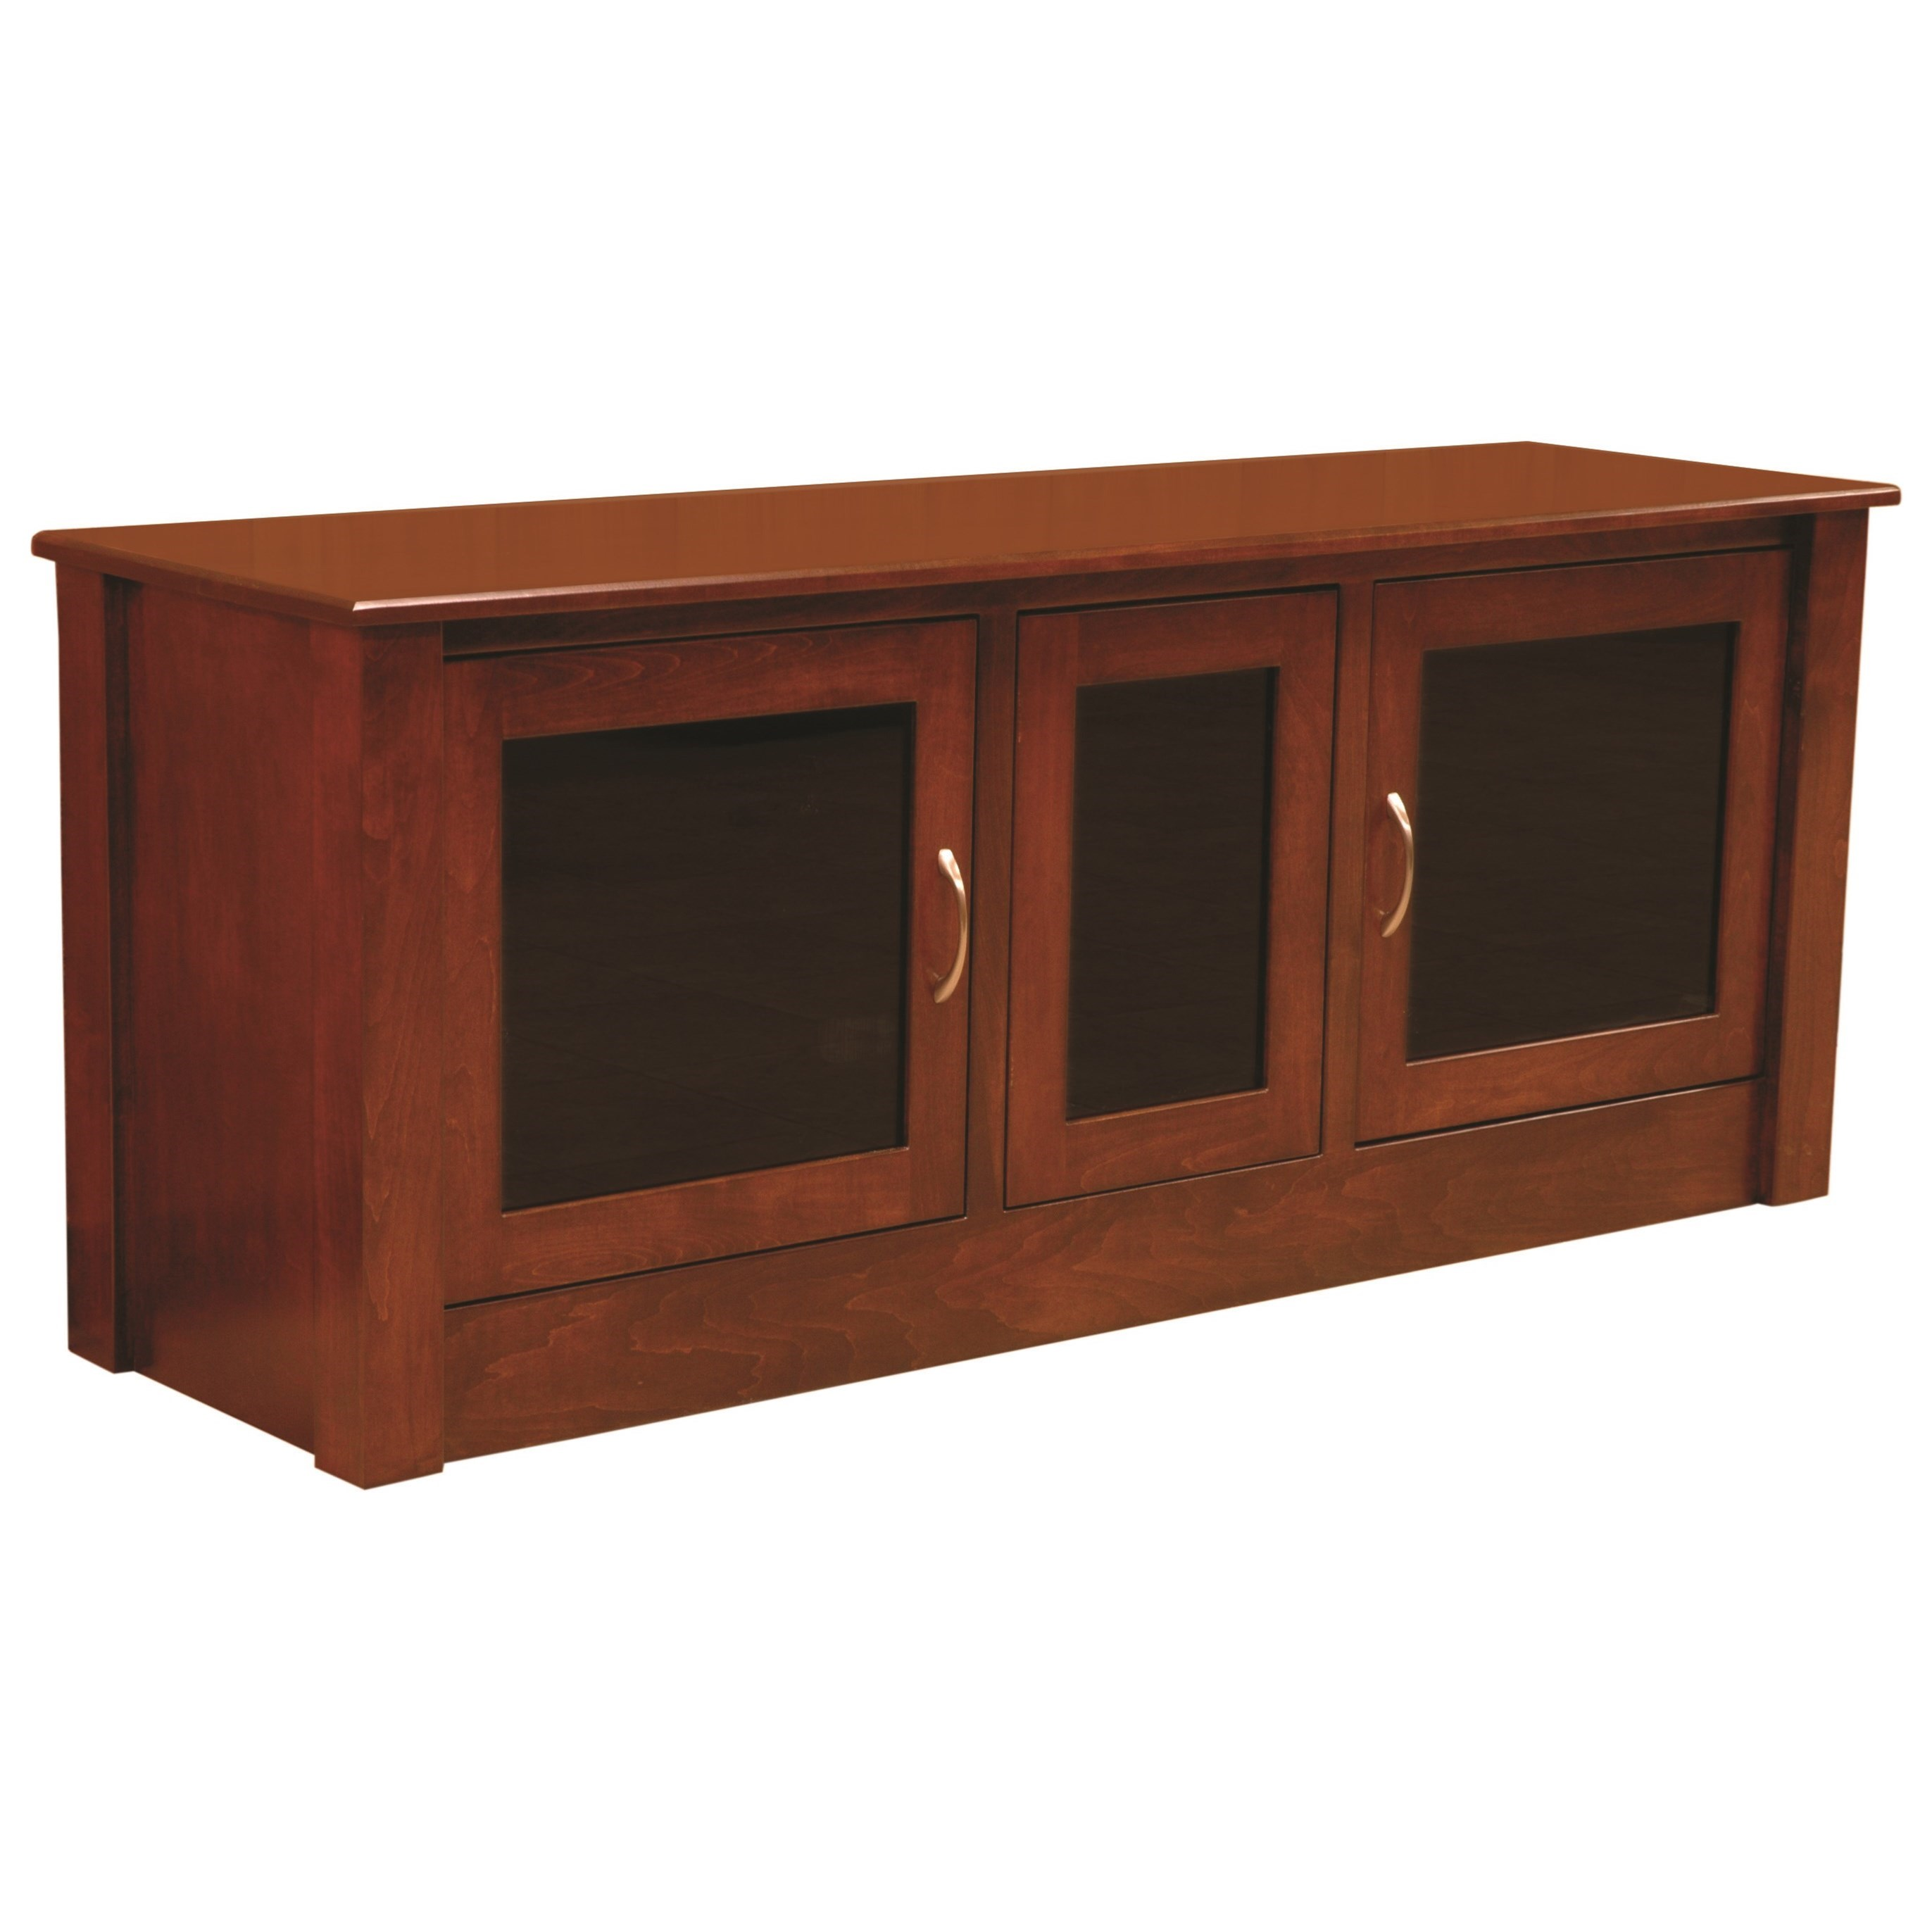 """Entertainment Horizon 63"""" TV Stand by INTEG Wood Products at Saugerties Furniture Mart"""